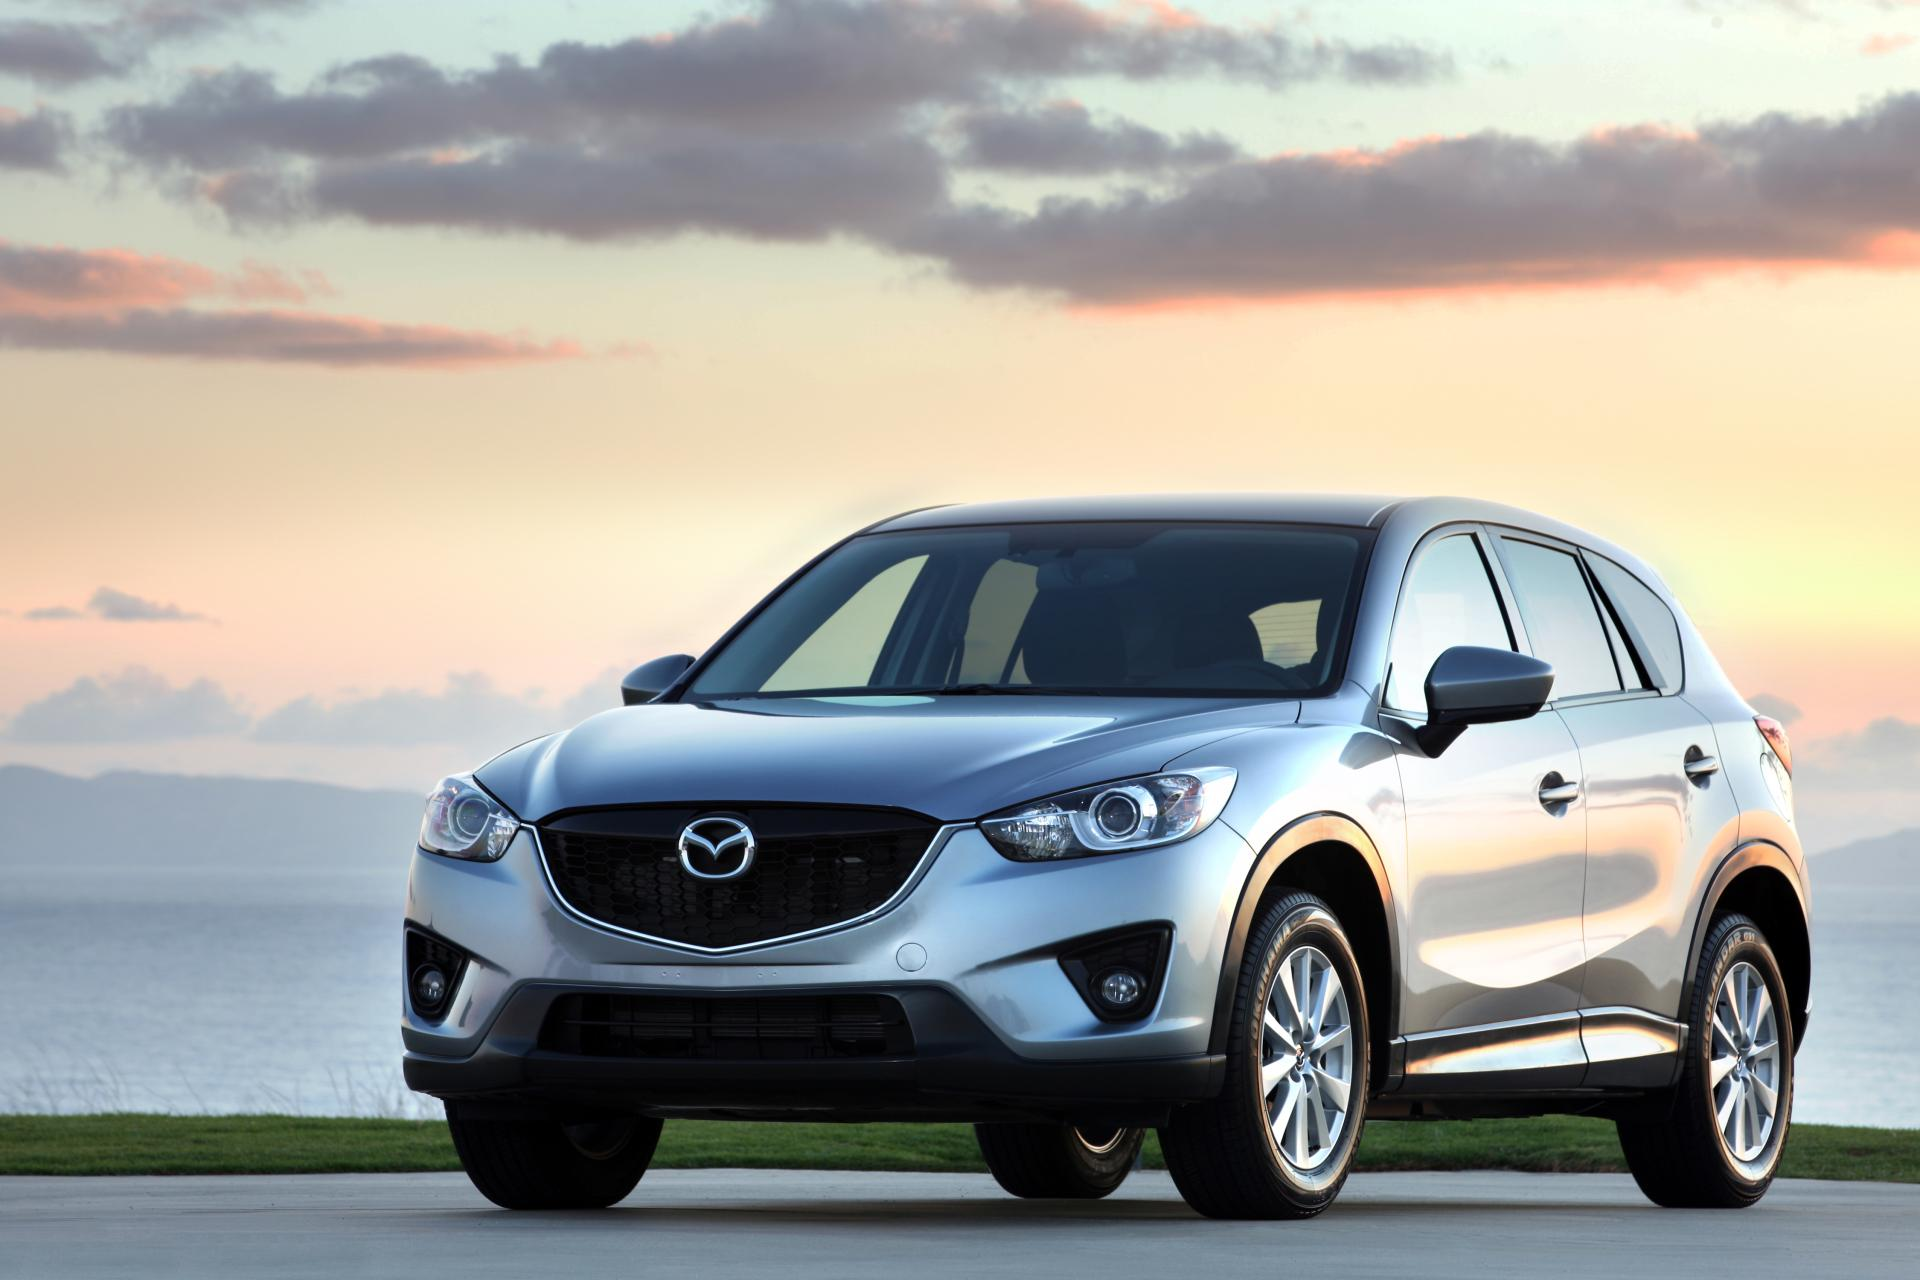 2014 mazda cx 5 news and information. Black Bedroom Furniture Sets. Home Design Ideas